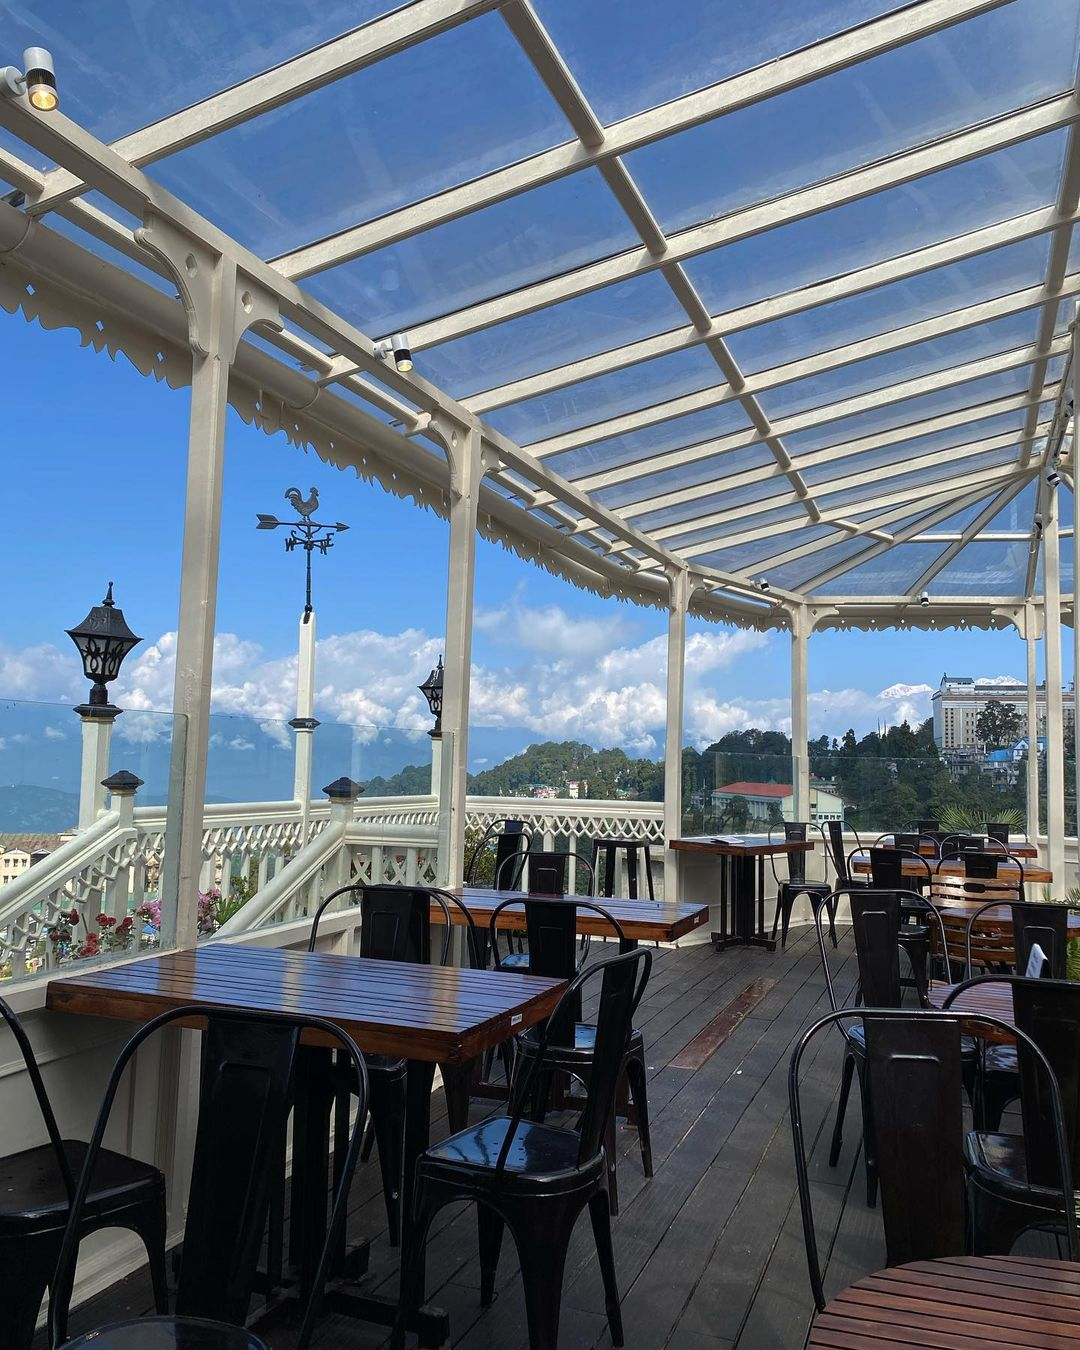 6 places to visit in Darjeeling, Glenary's Bakery and Cafe near The Elgin Hotels & Resorts